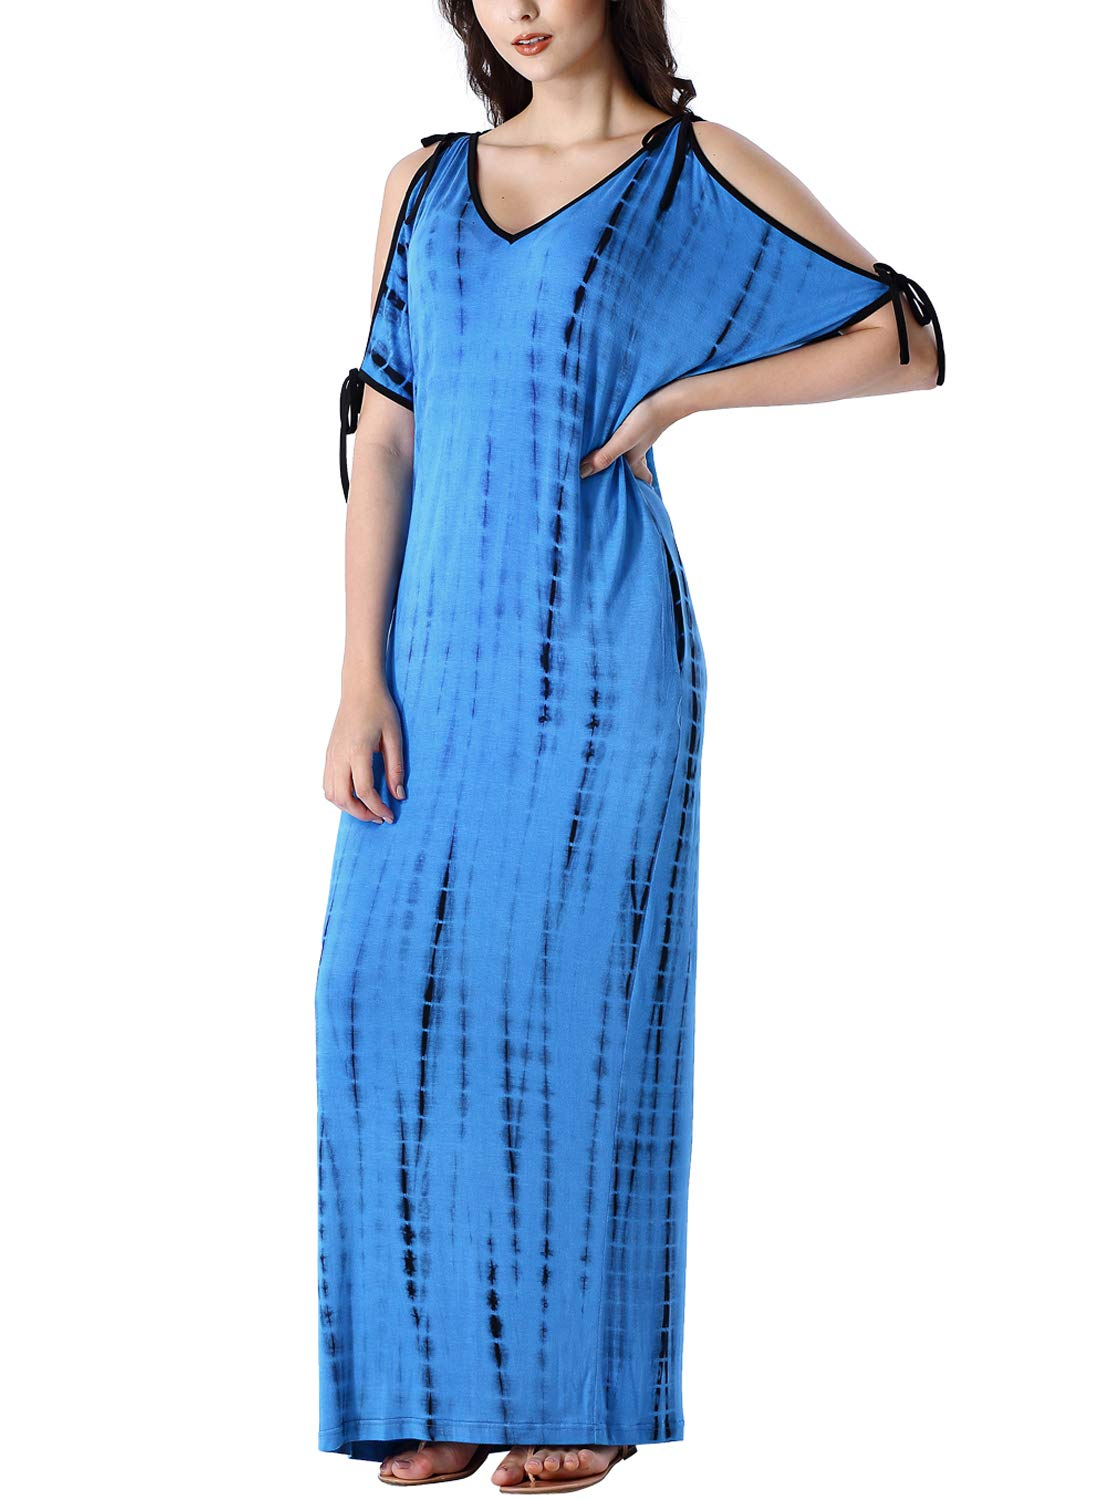 Available at Amazon: VFSHOW Women's V Neck Tie Cold Shoulder Batwing Sleeve Pockets Loose Casual Beach Maxi Dress